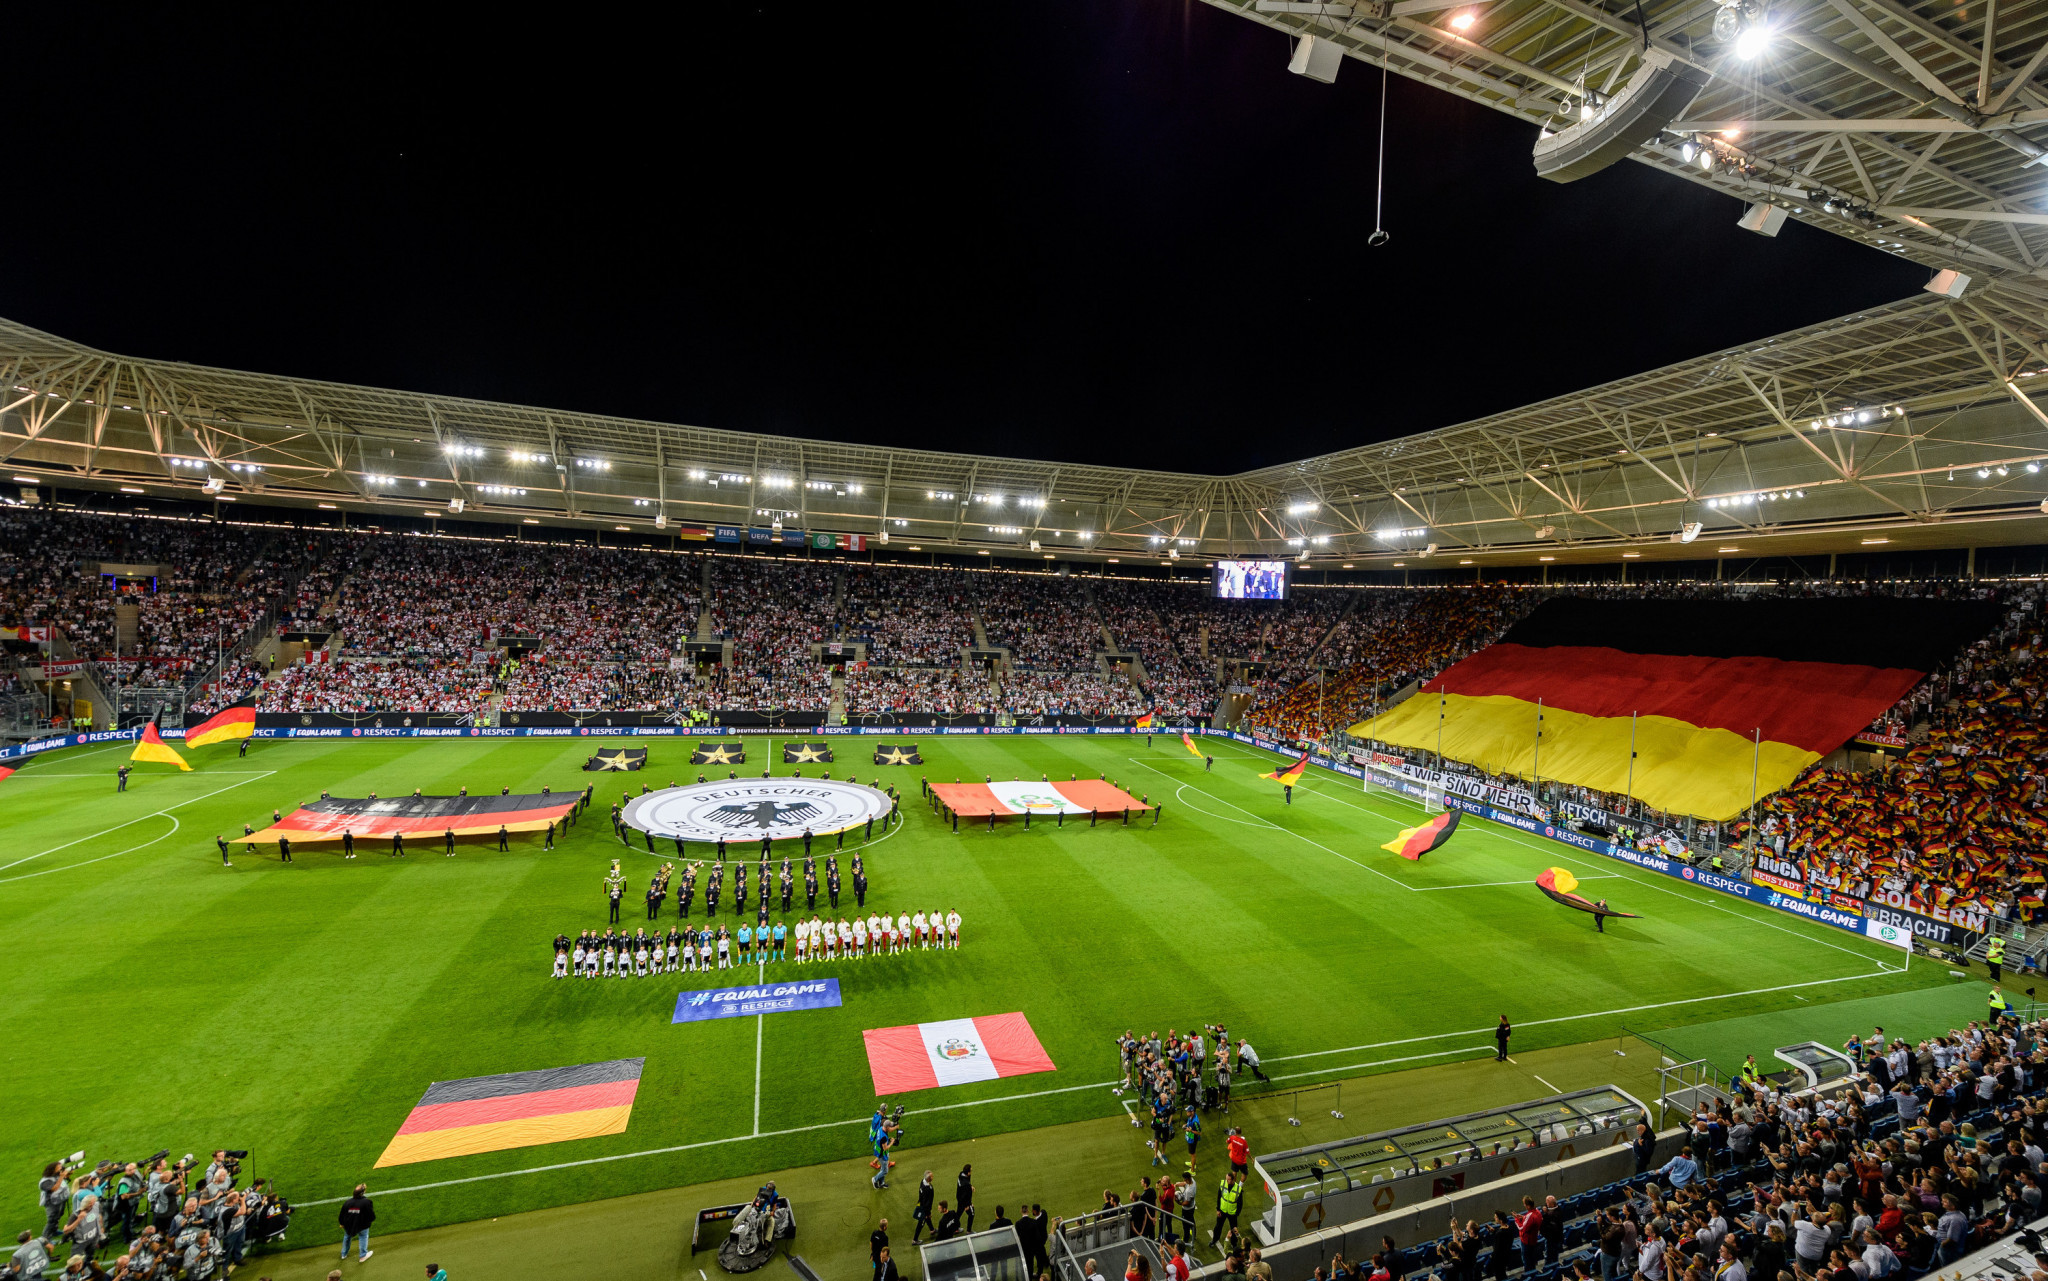 DFB dismiss claims Germany friendly moved to avoid fan violence in lead-up to Euro 2024 vote